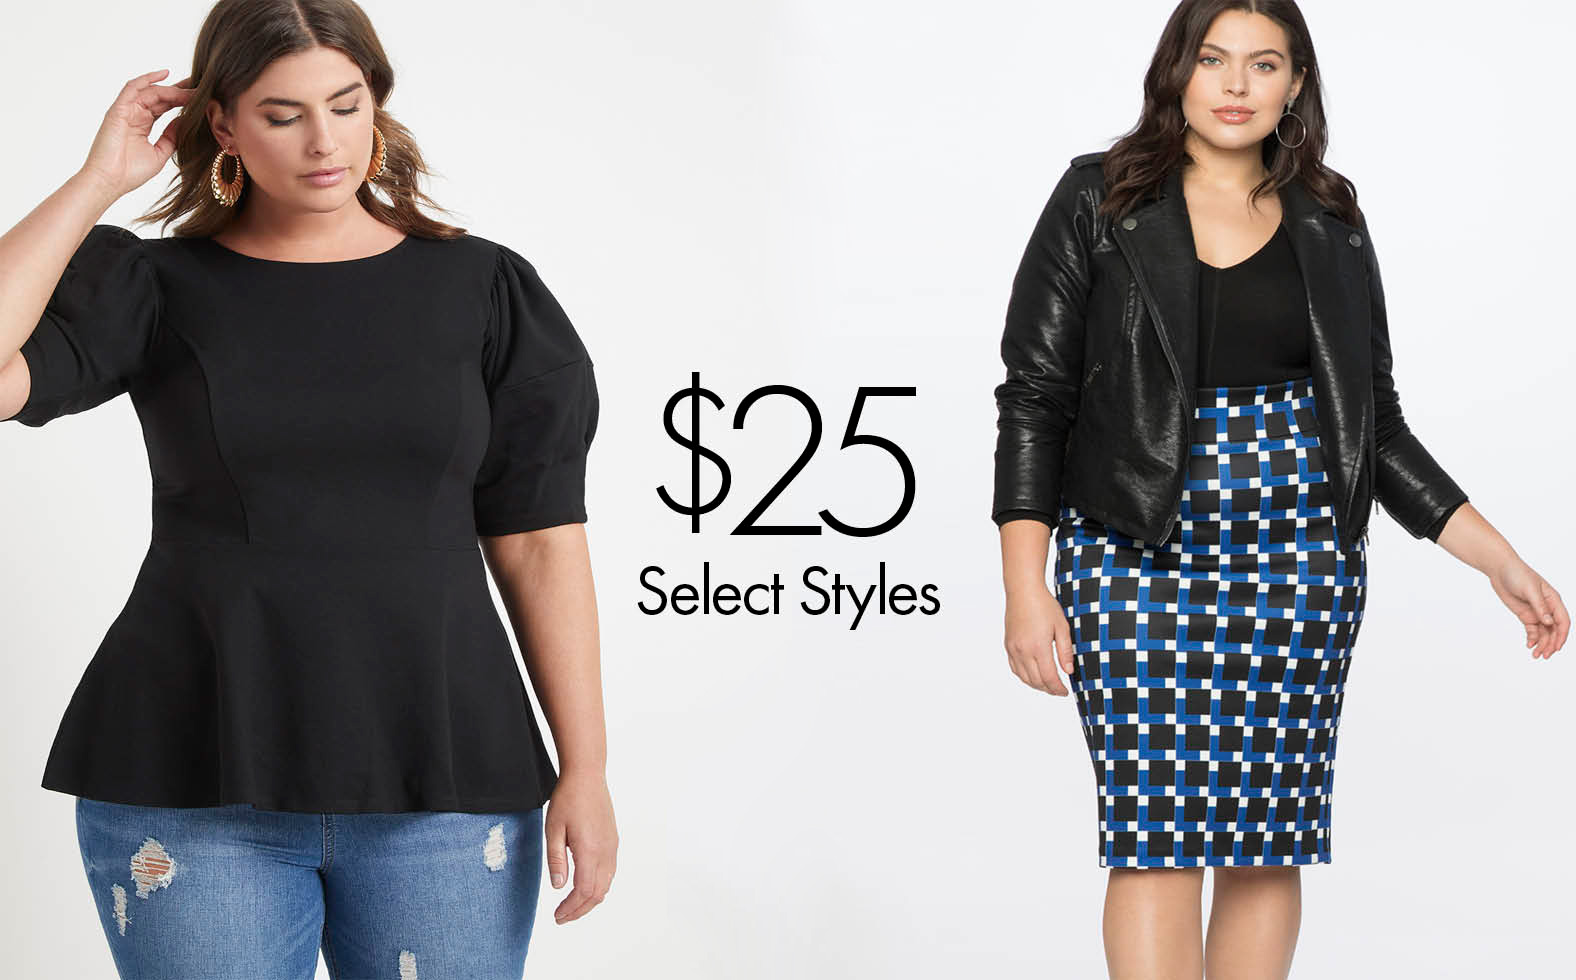 Plus Size Clothing, Dresses, Skirts, Suits, Tops, Jeans and